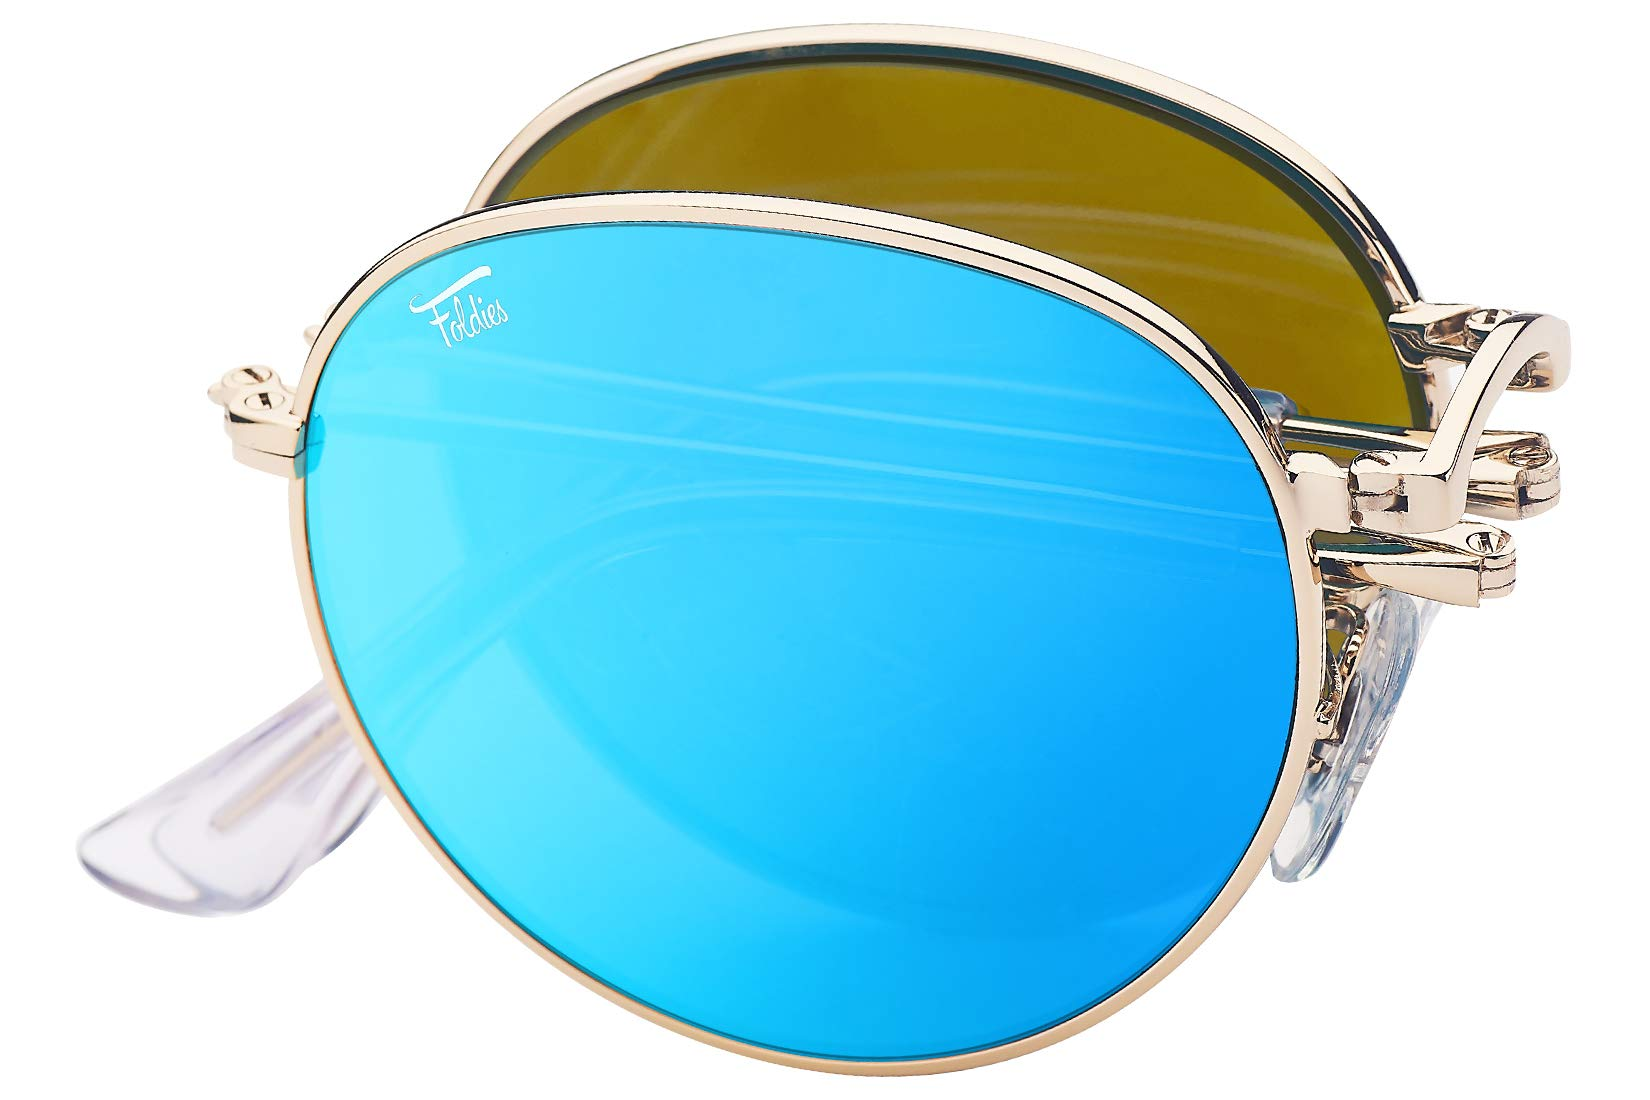 Foldies Gold Folding Round Sunglasses with Polarized Blue Mirrored Lenses by Foldies